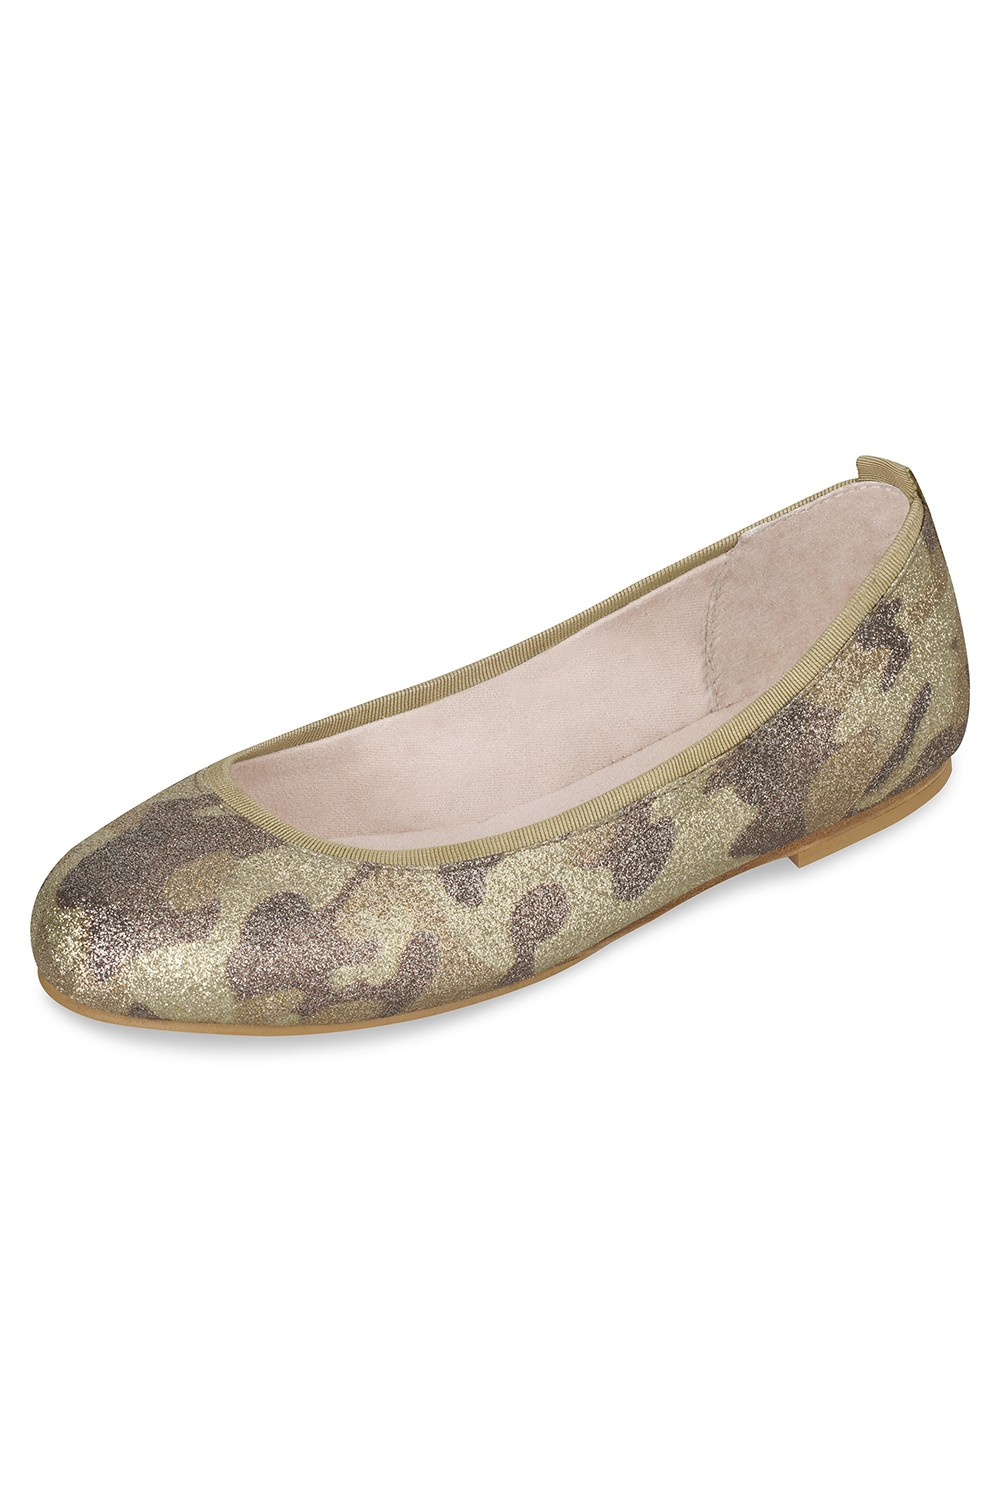 Camouflage Ballet Flat Girls Fashion Shoes